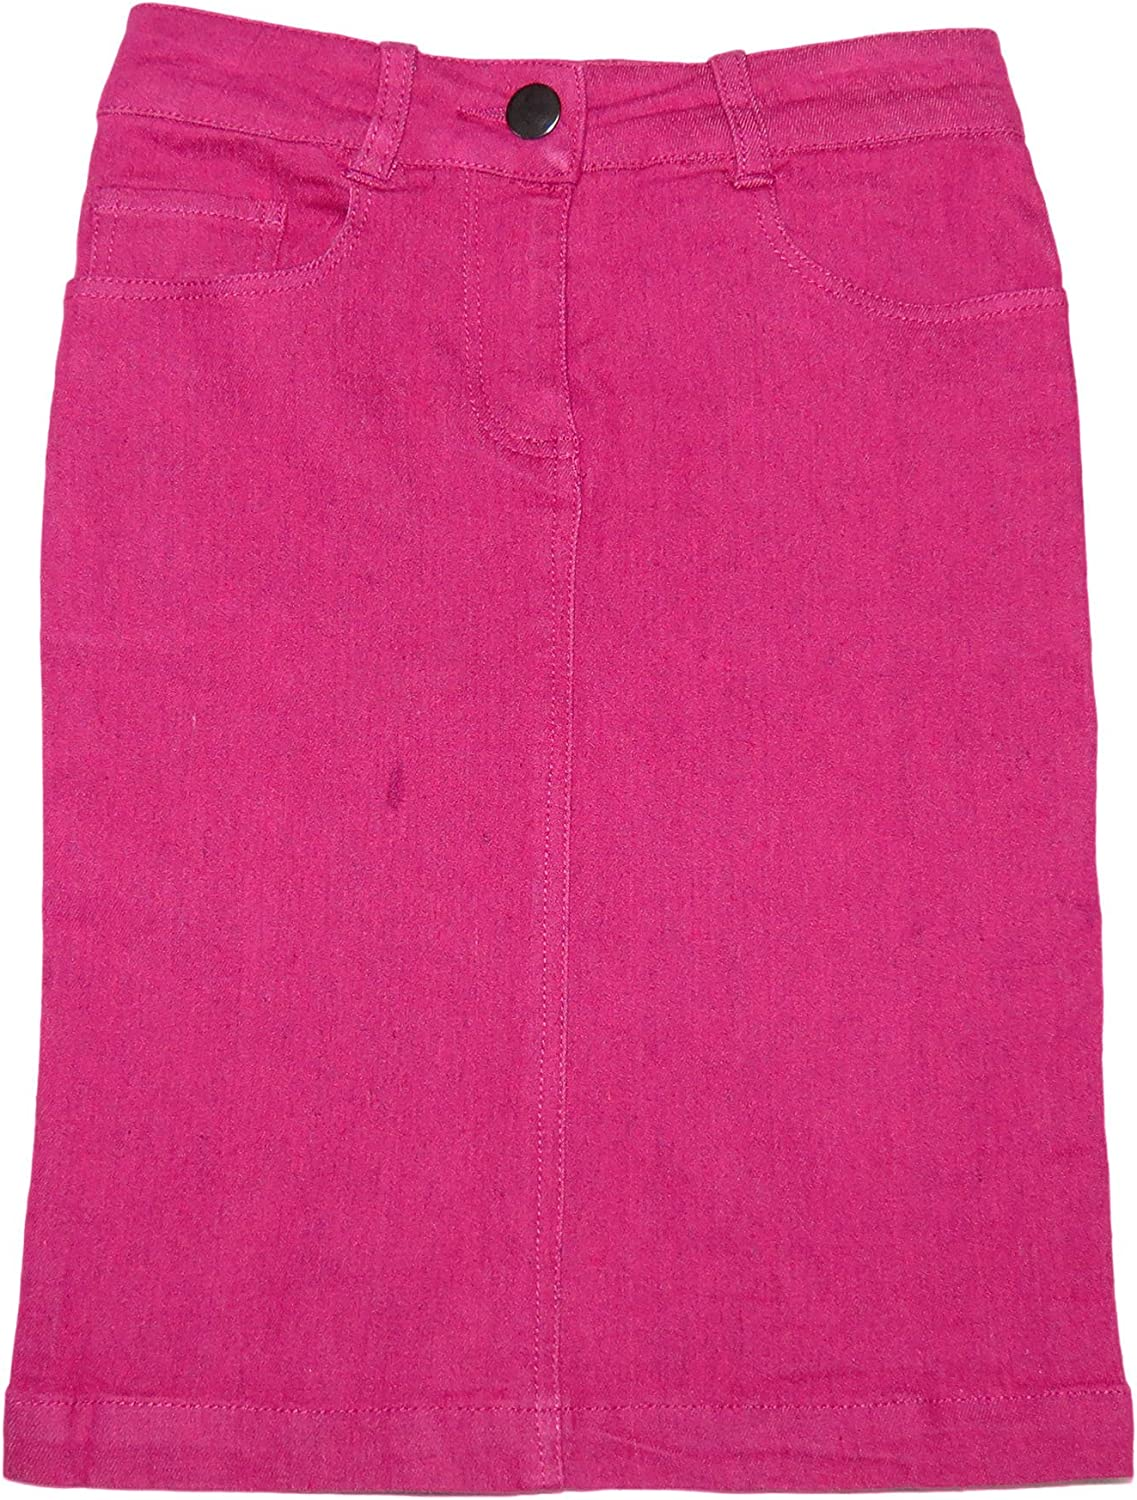 Amazon Com Miss Meme Girl S Stretch Denim Pencil Skirt Gs 1971 Medium Raspberry Clothing